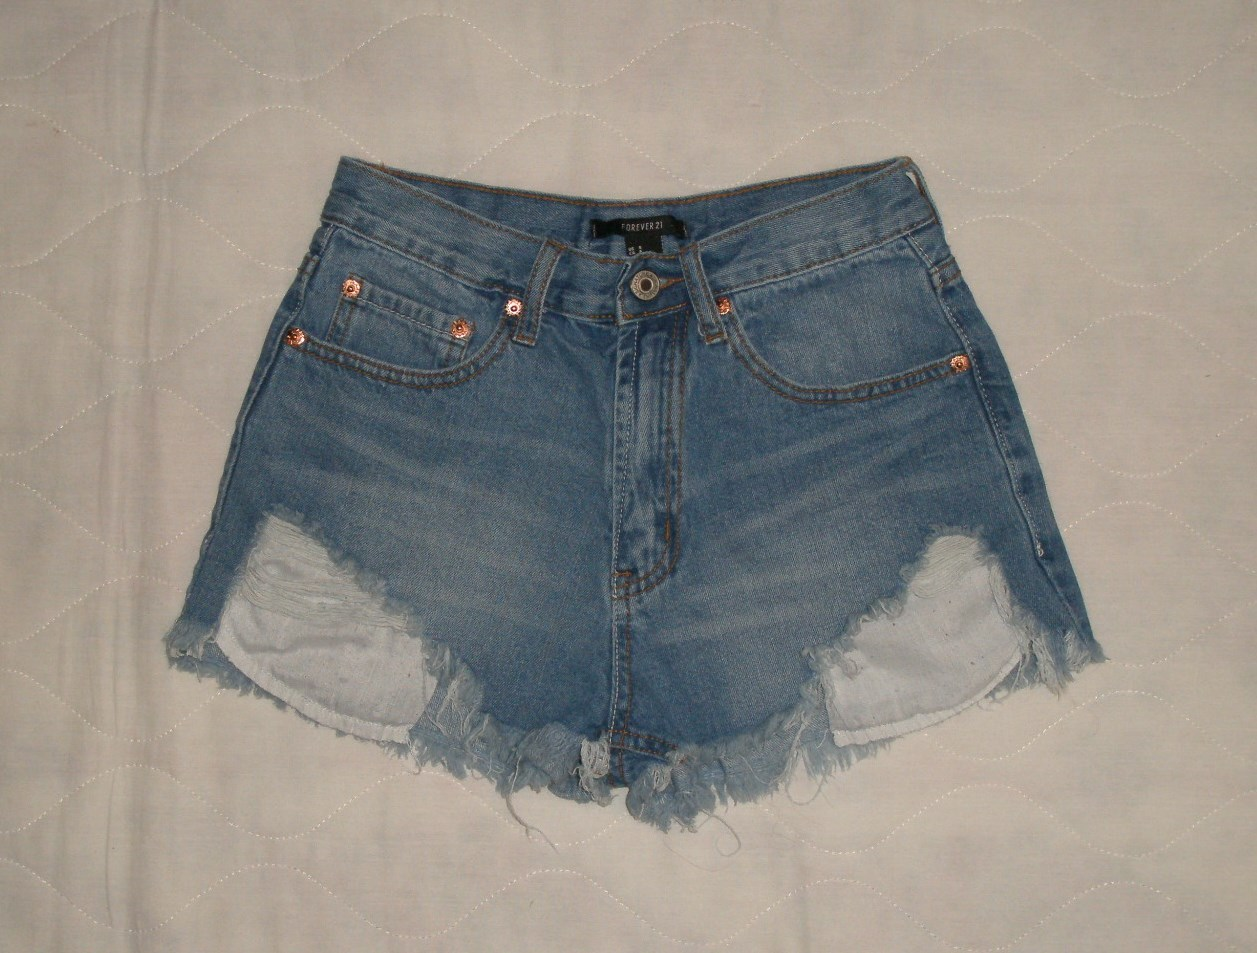 Forever 21 High Waist Rise Distressed Denim Jean Shorts Size S 4 5 6 26 27 28 - $34.99